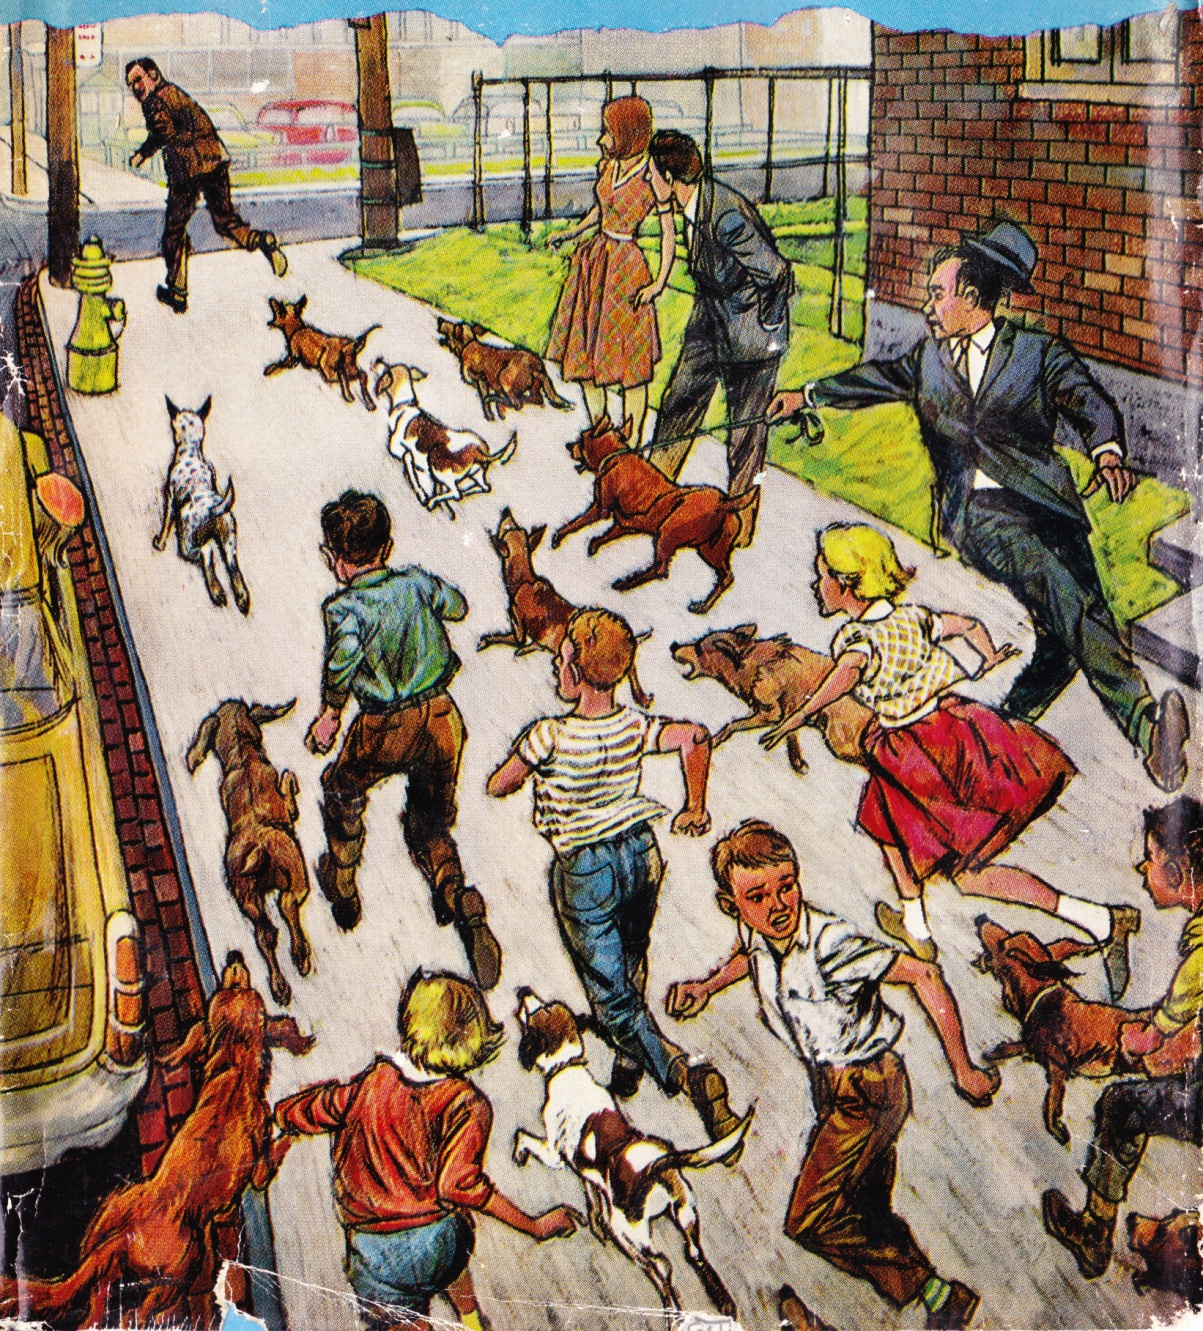 C:\Users\Robert\Documents\CARTOONING ILLUSTRATION ANIMATION\IMAGE BY CARTOONIST\P\PARKER Lewis, Mystery Of The Disappearing Dogs, 1963, fc.jpg